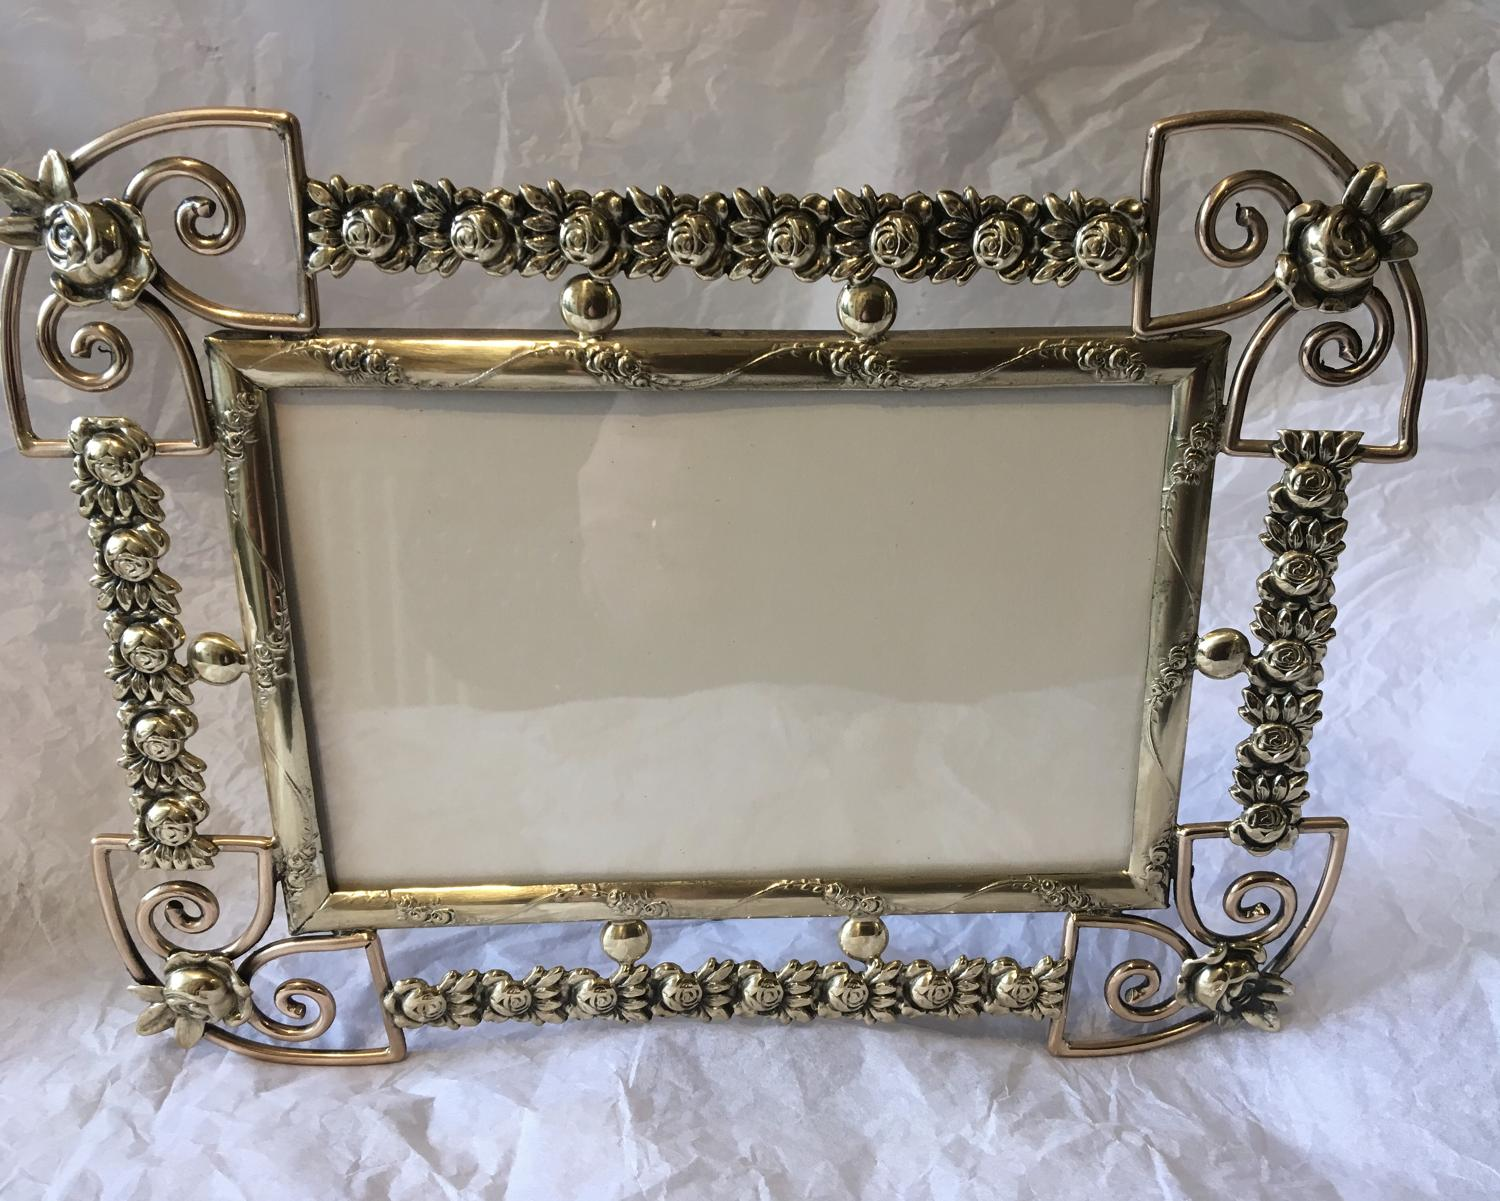 Decorative Victorian brass photograph frame